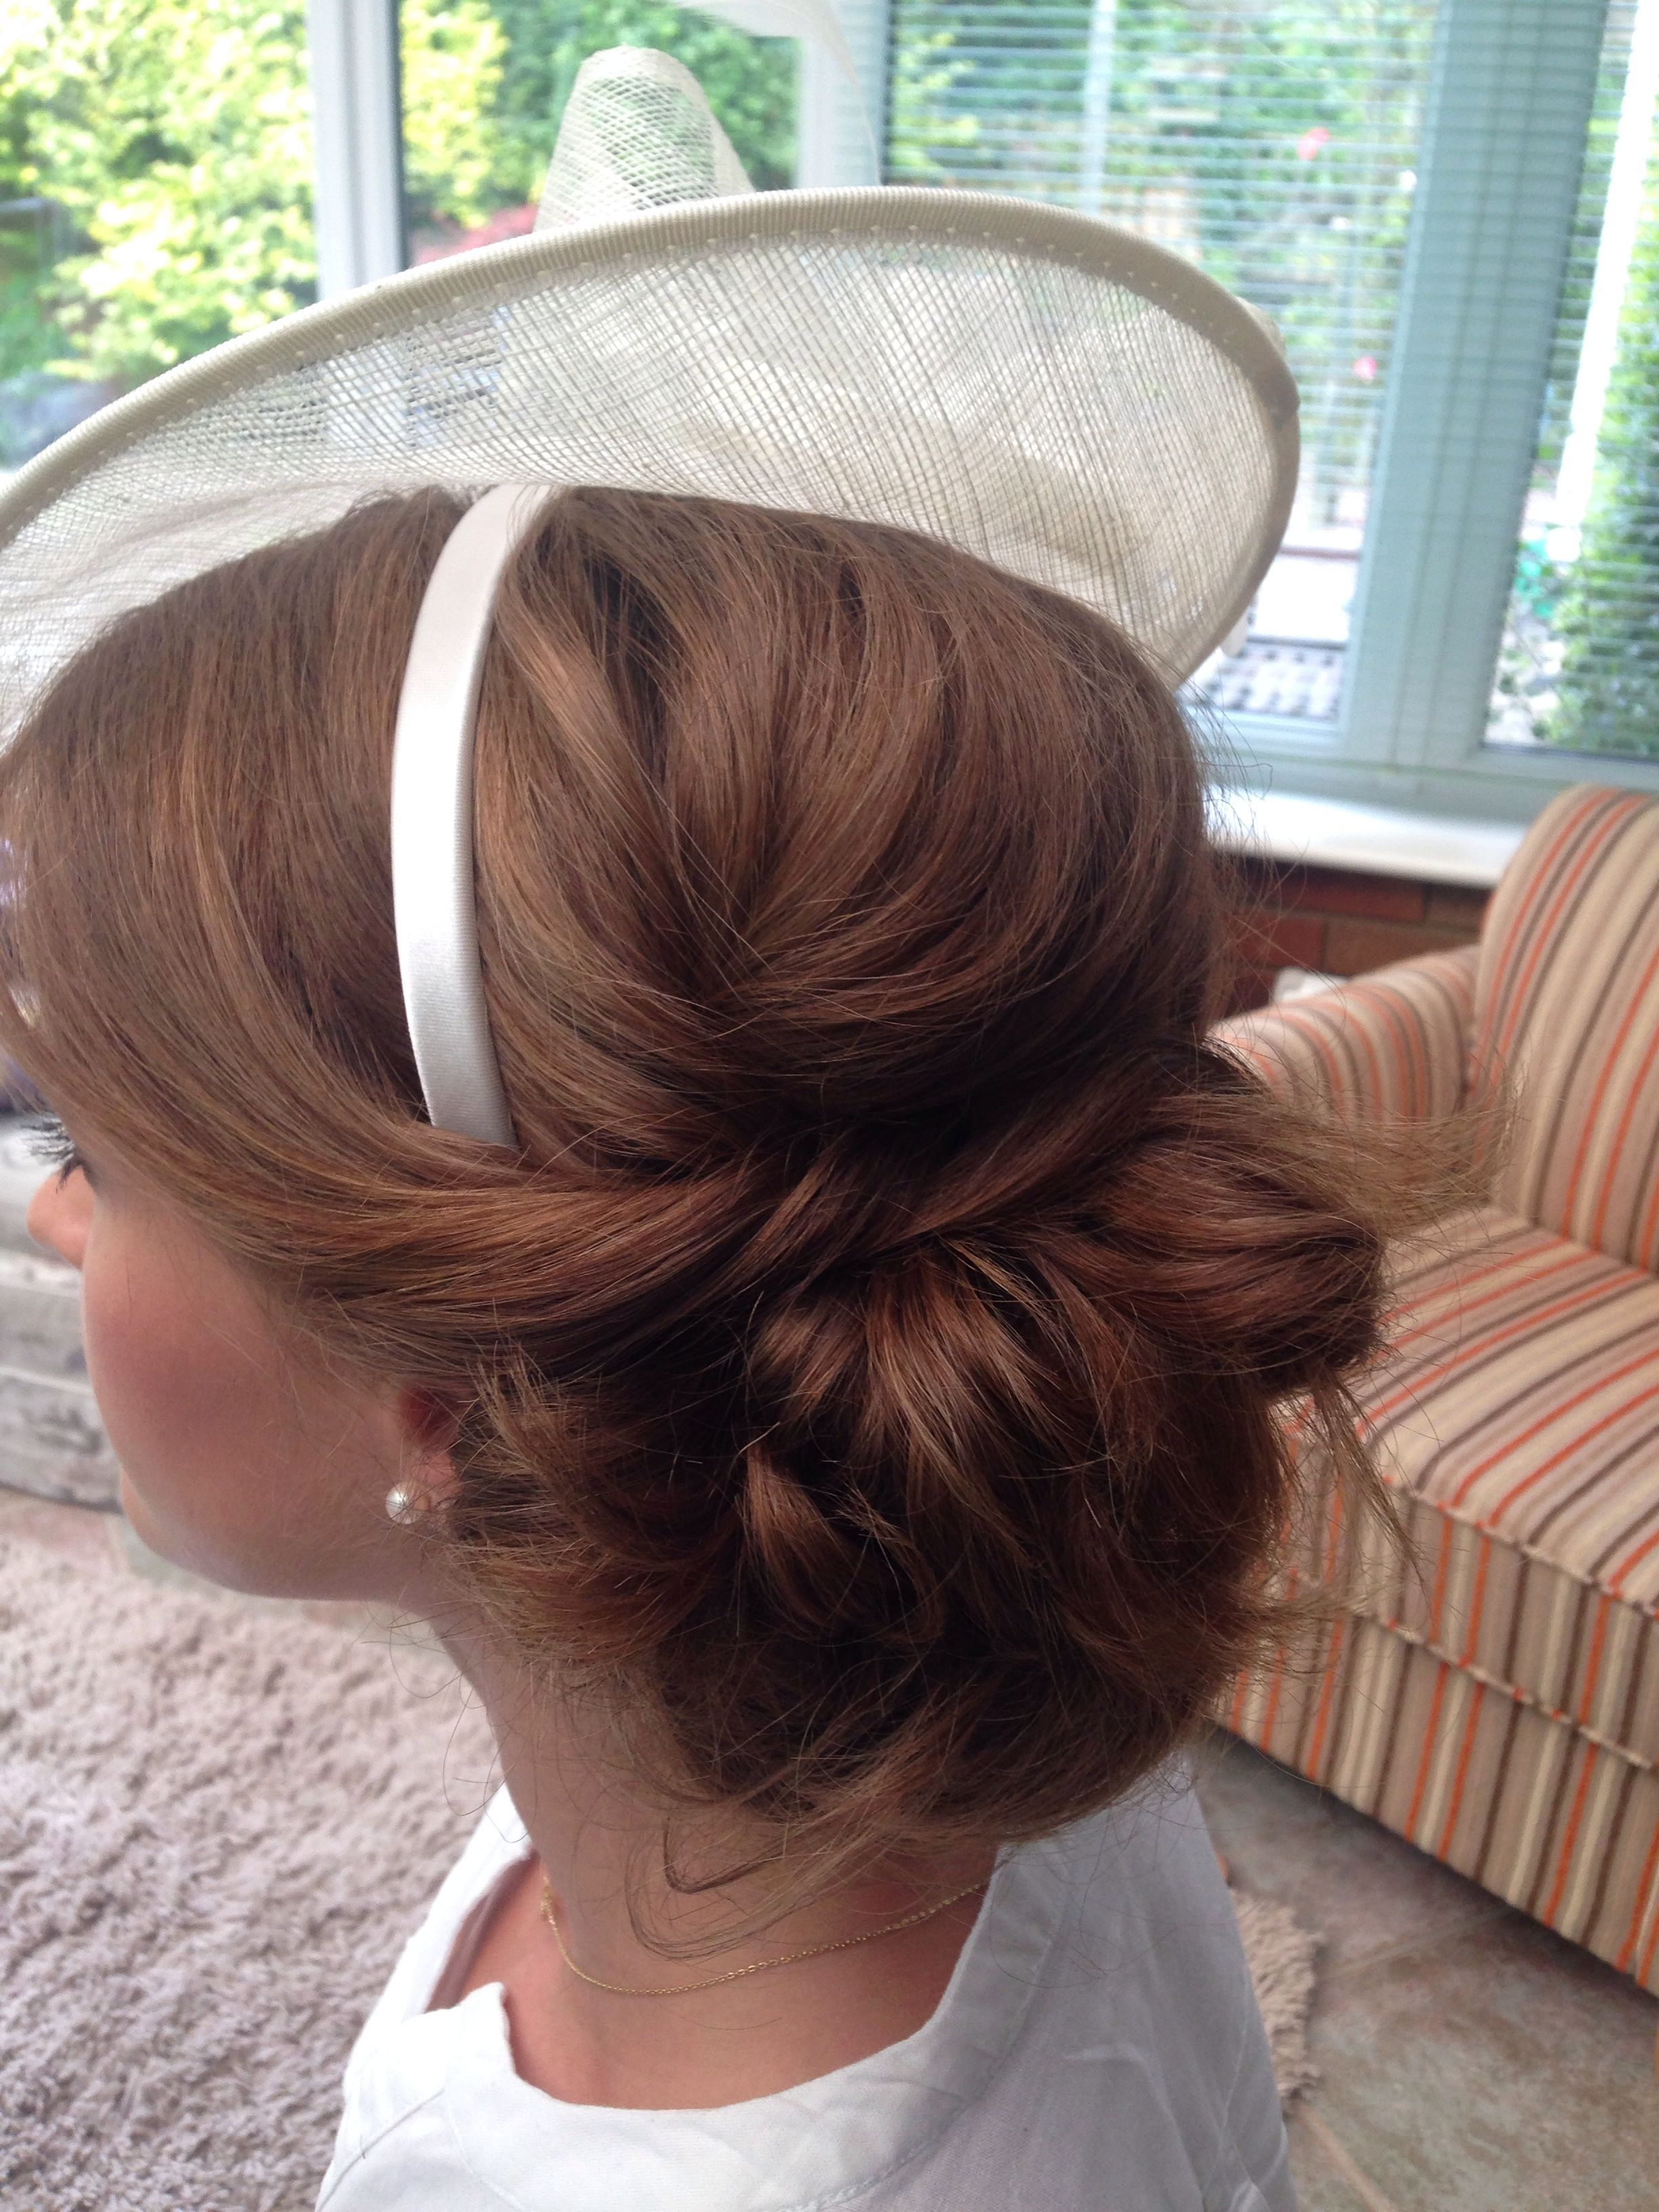 Best Mother Of The Bride Hairstyles Wearing A Hat Or Fascinator Mother Of The Bride Hair Fascinator Hairstyles Mother Of The Groom Hairstyles